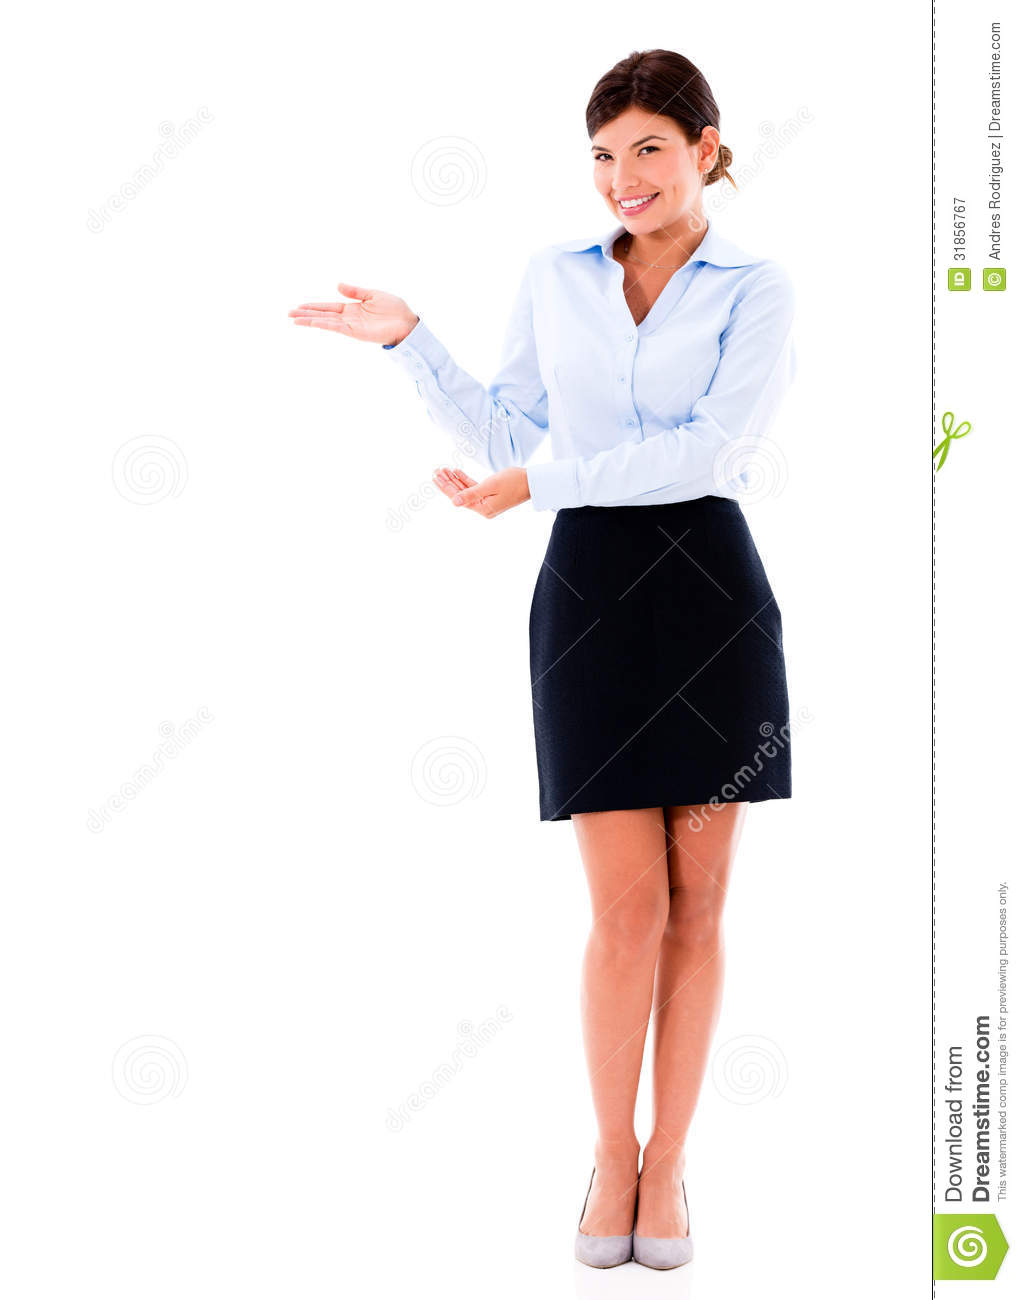 welcoming-business-woman-presenting-something-isolated-over-white-31856767.jpg